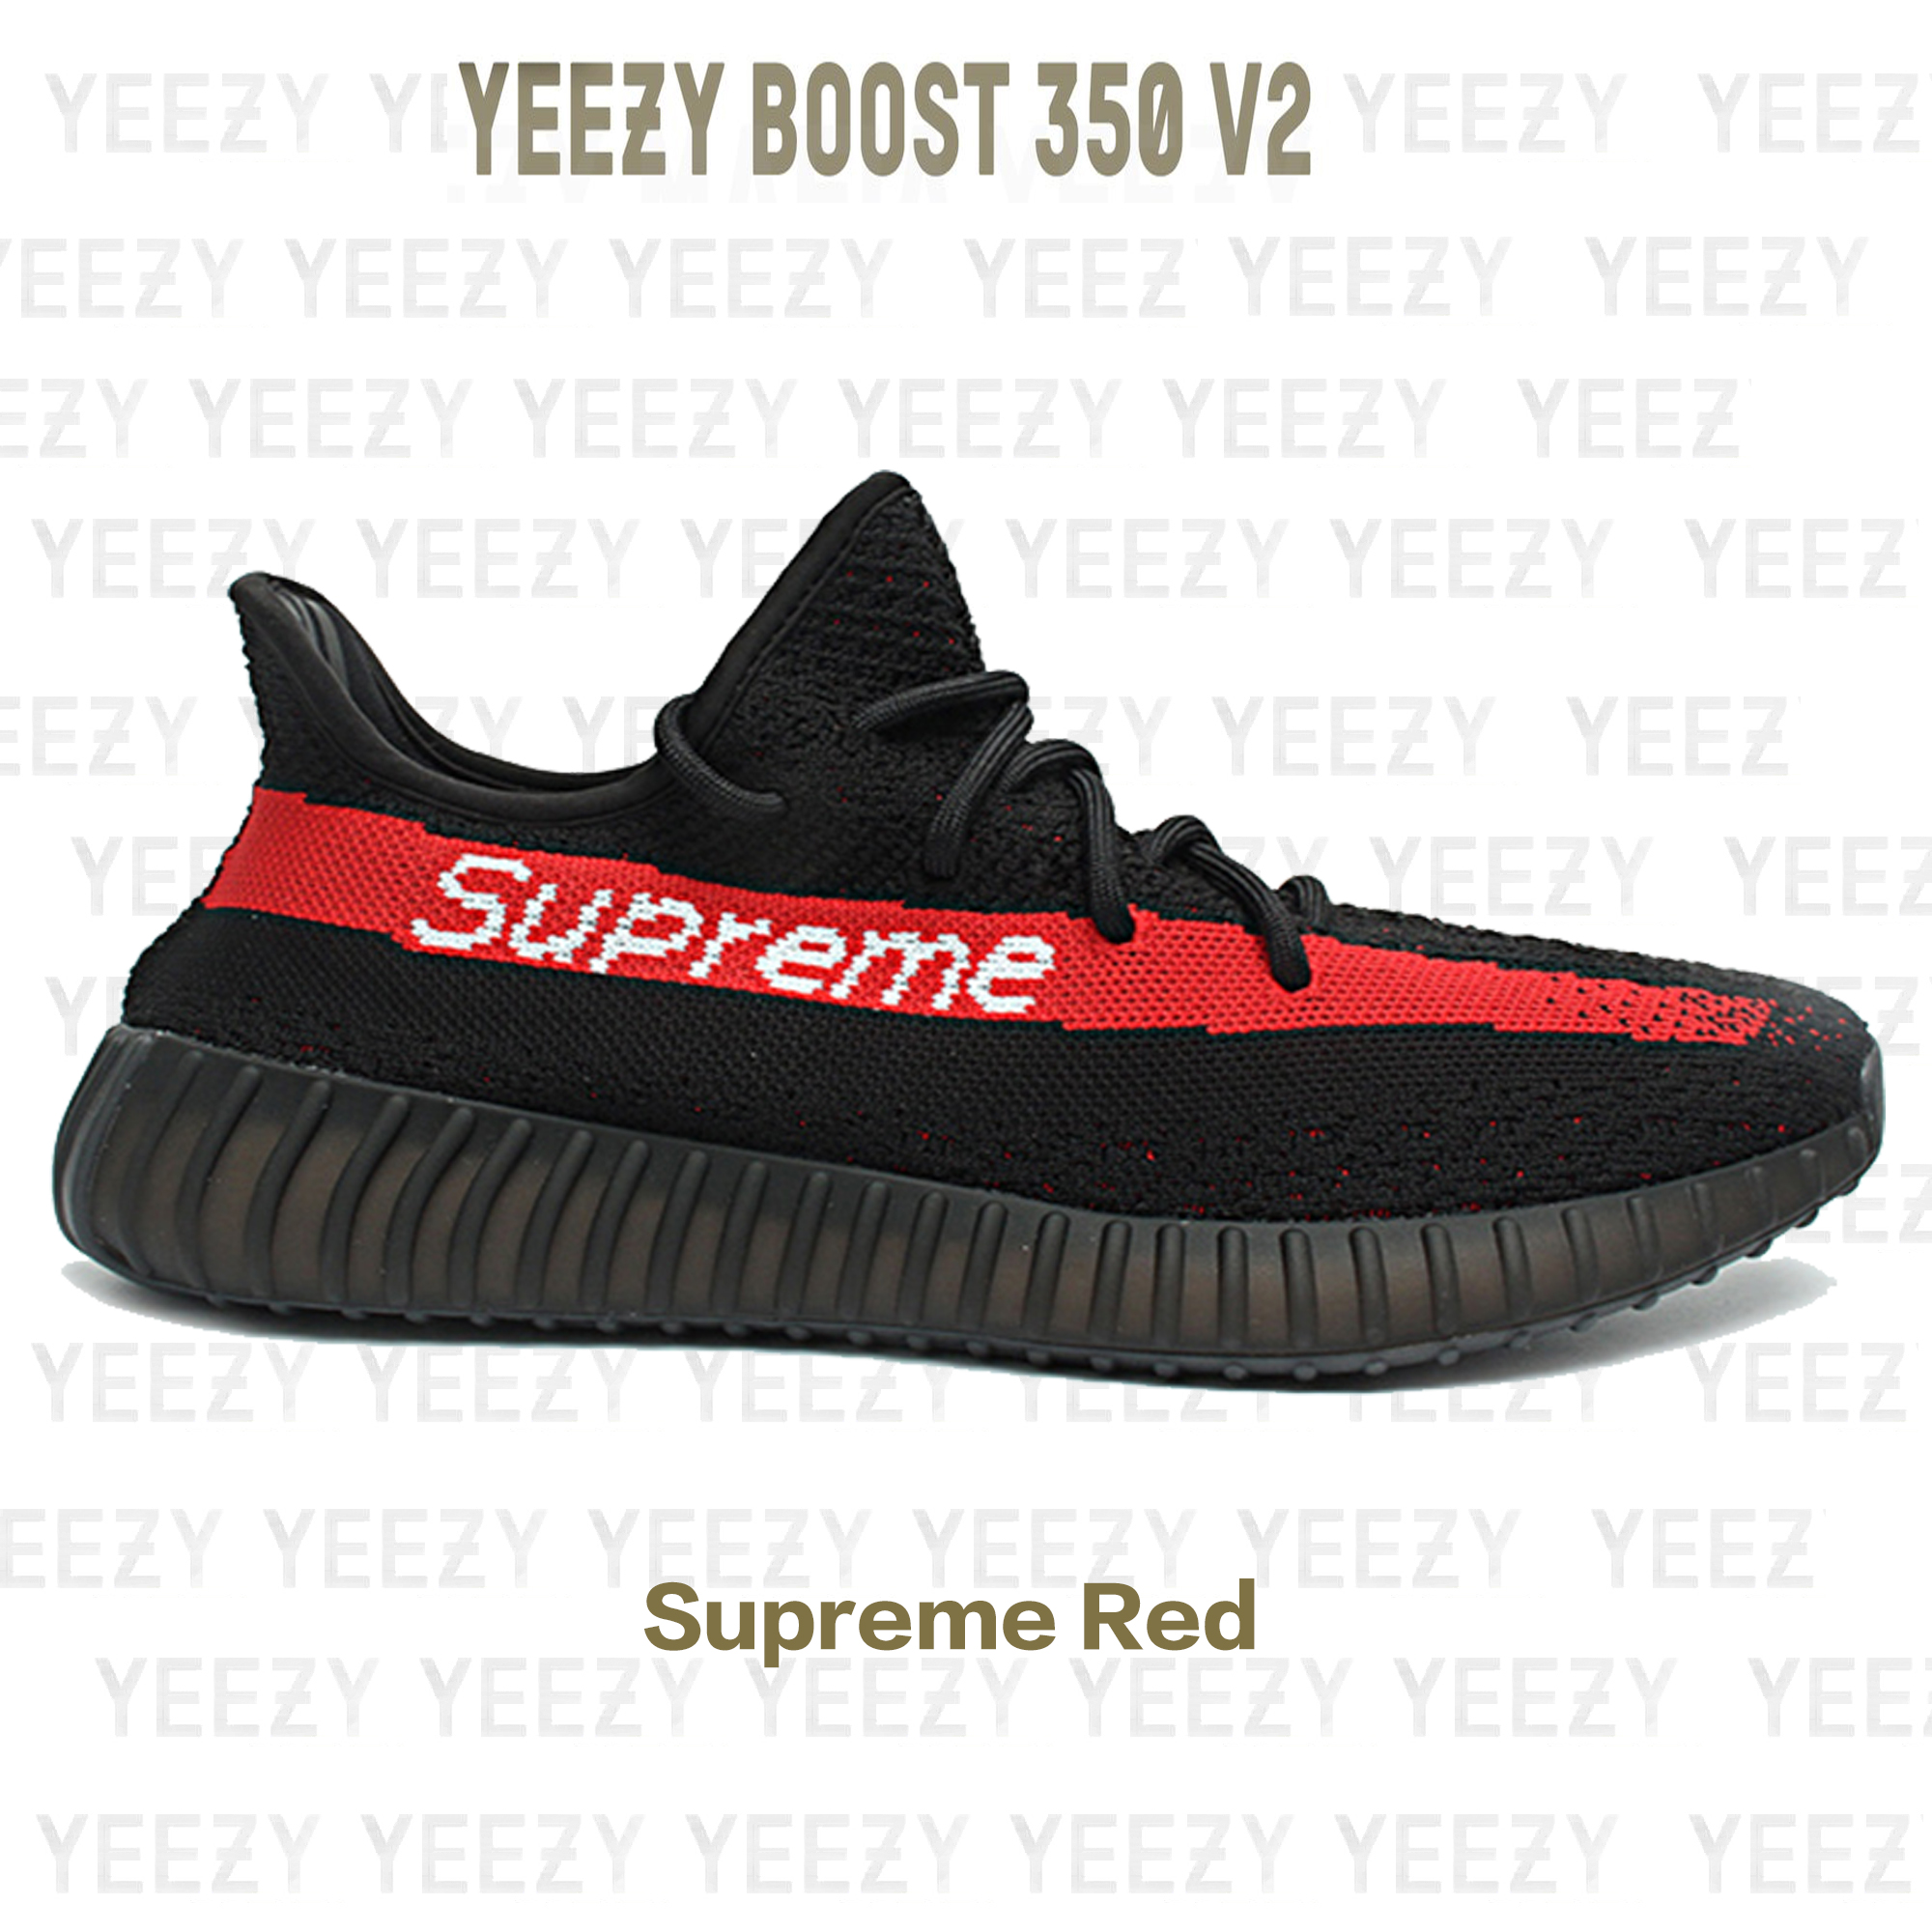 60fdfc71ea608 Yeezy 20boost 20350 20v2 20supreme 20red 20(1) original